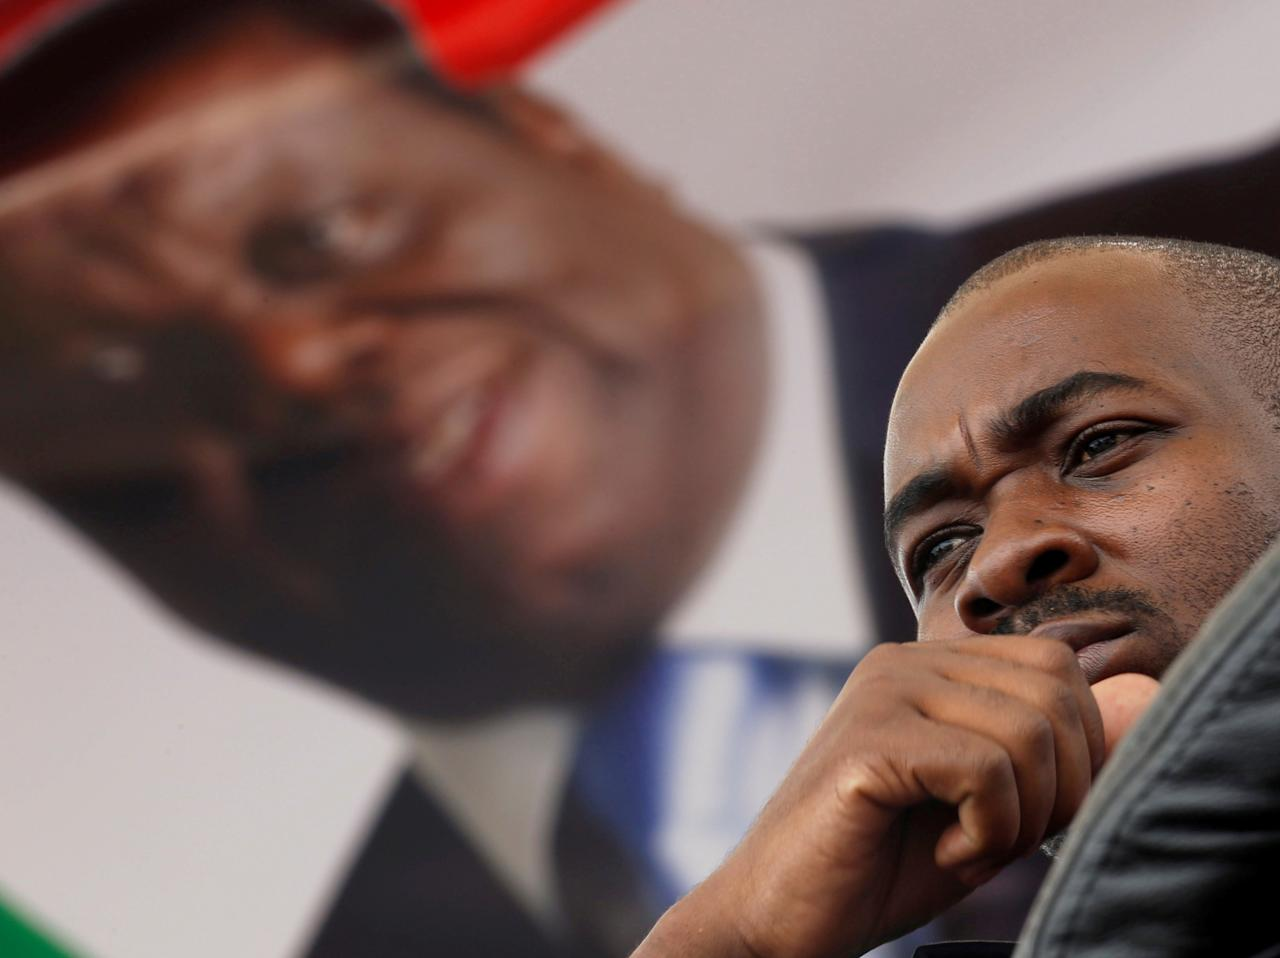 Nelson Chamisa, the new leader for Movement For Democratic Change (MDC), looks on during the funeral parade of Morgan Tsvangirai in Harare, Zimbabwe February 19, 2018. REUTERS/Philimon Bulawayo     TPX IMAGES OF THE DAY